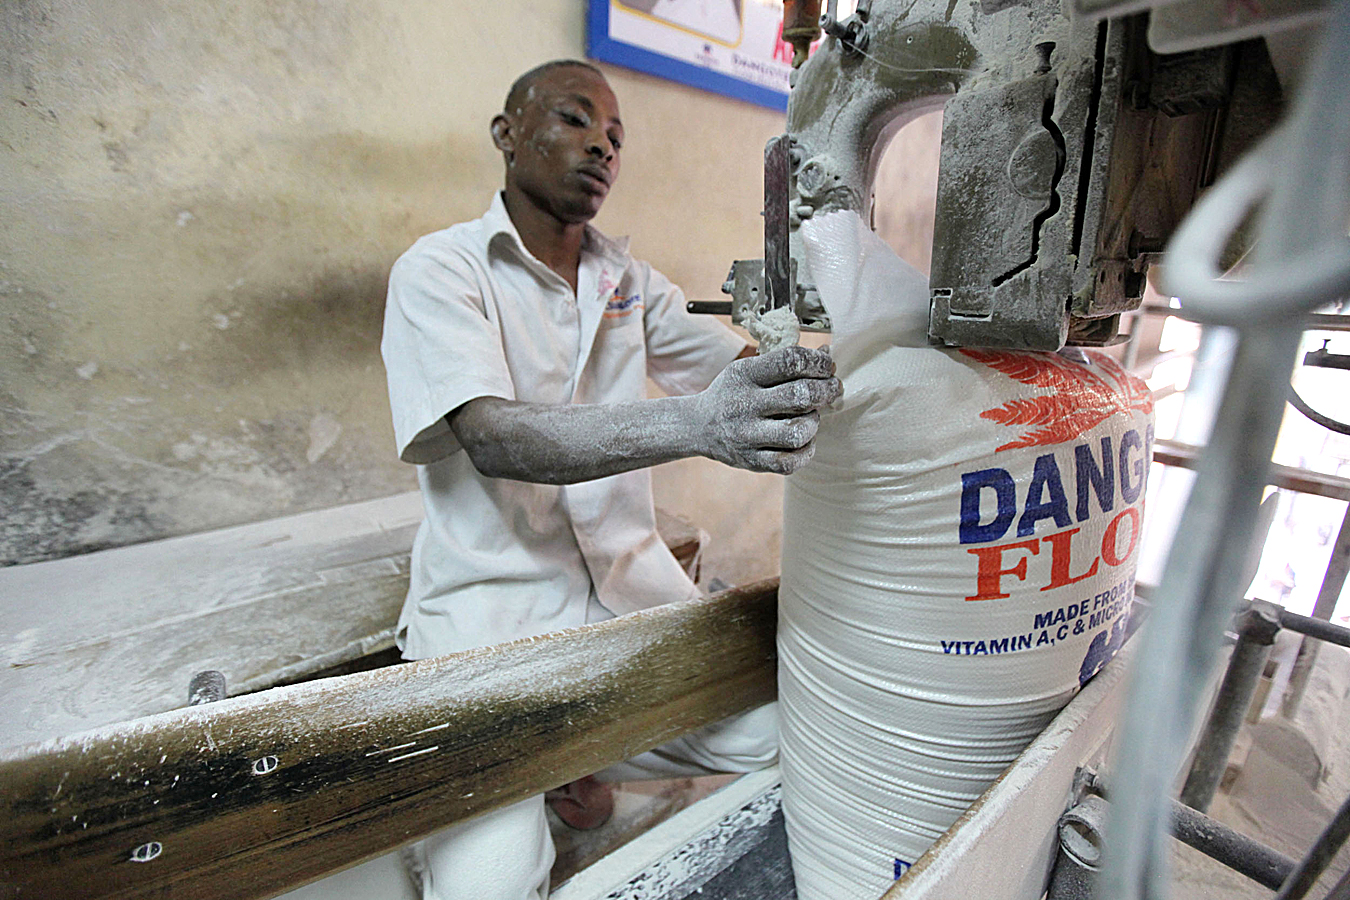 Dangote Resigns From Dangote Flour Mills Here S Why